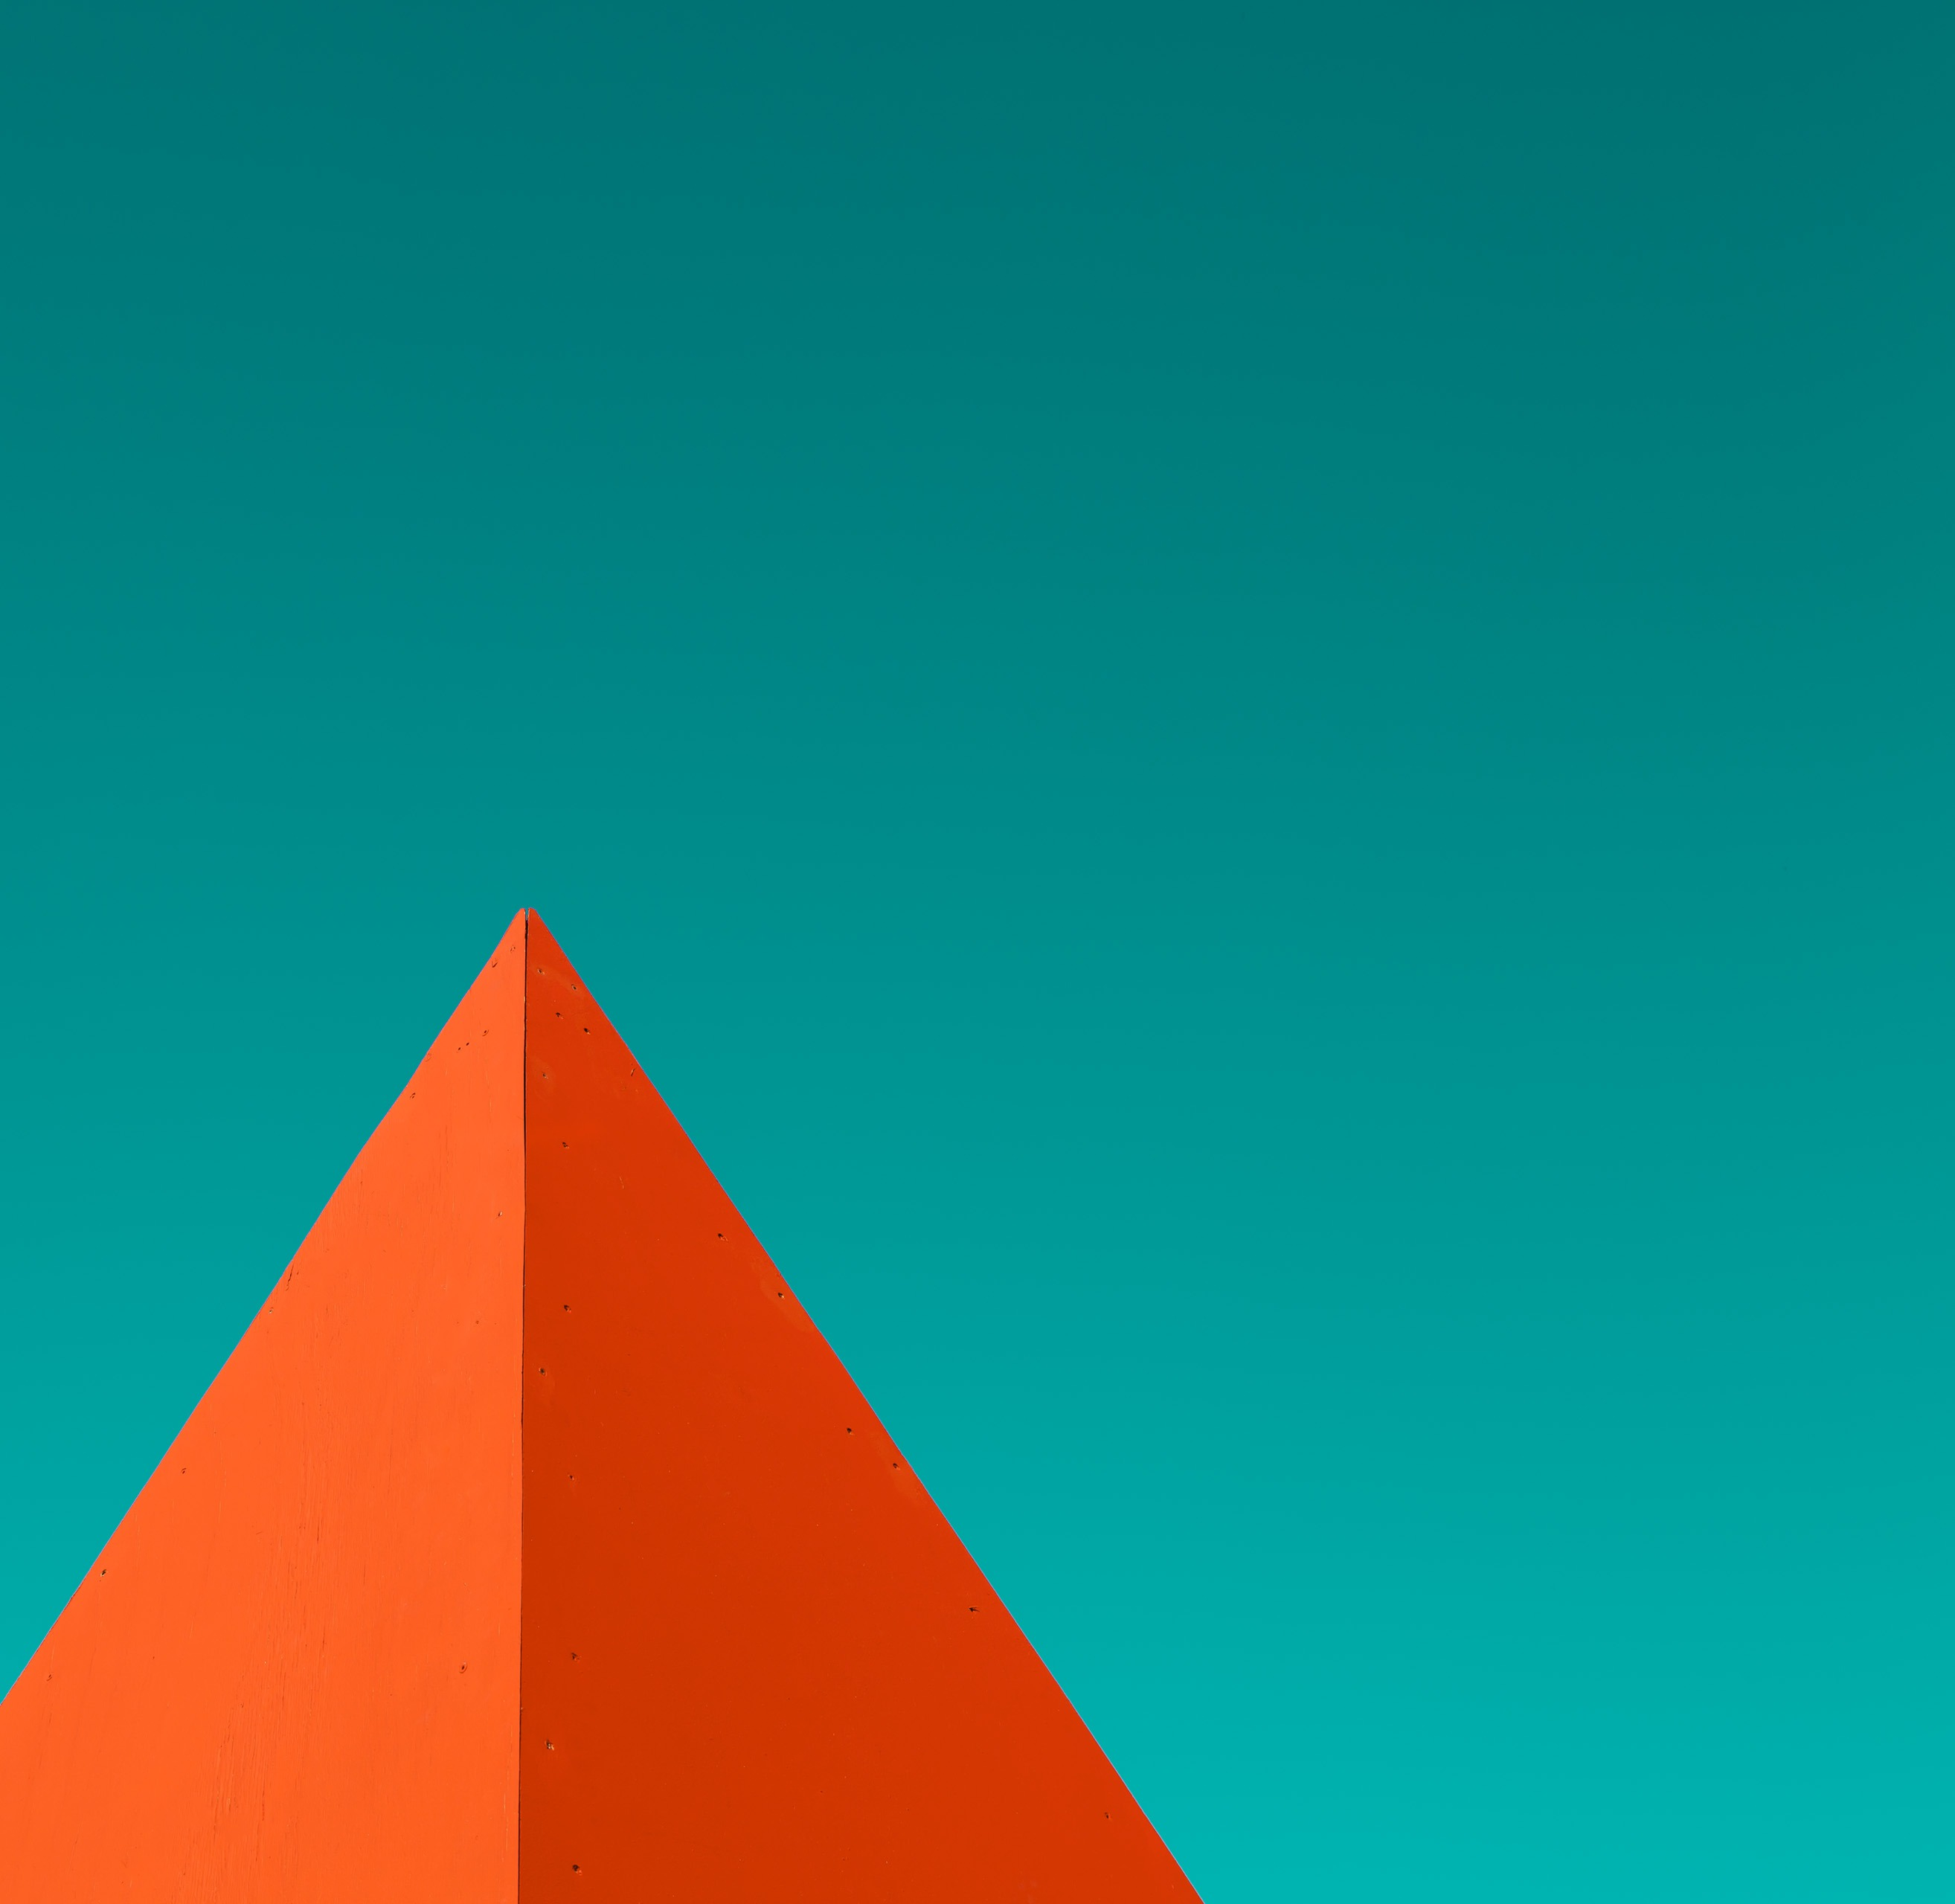 Wallpapers Android 5.0